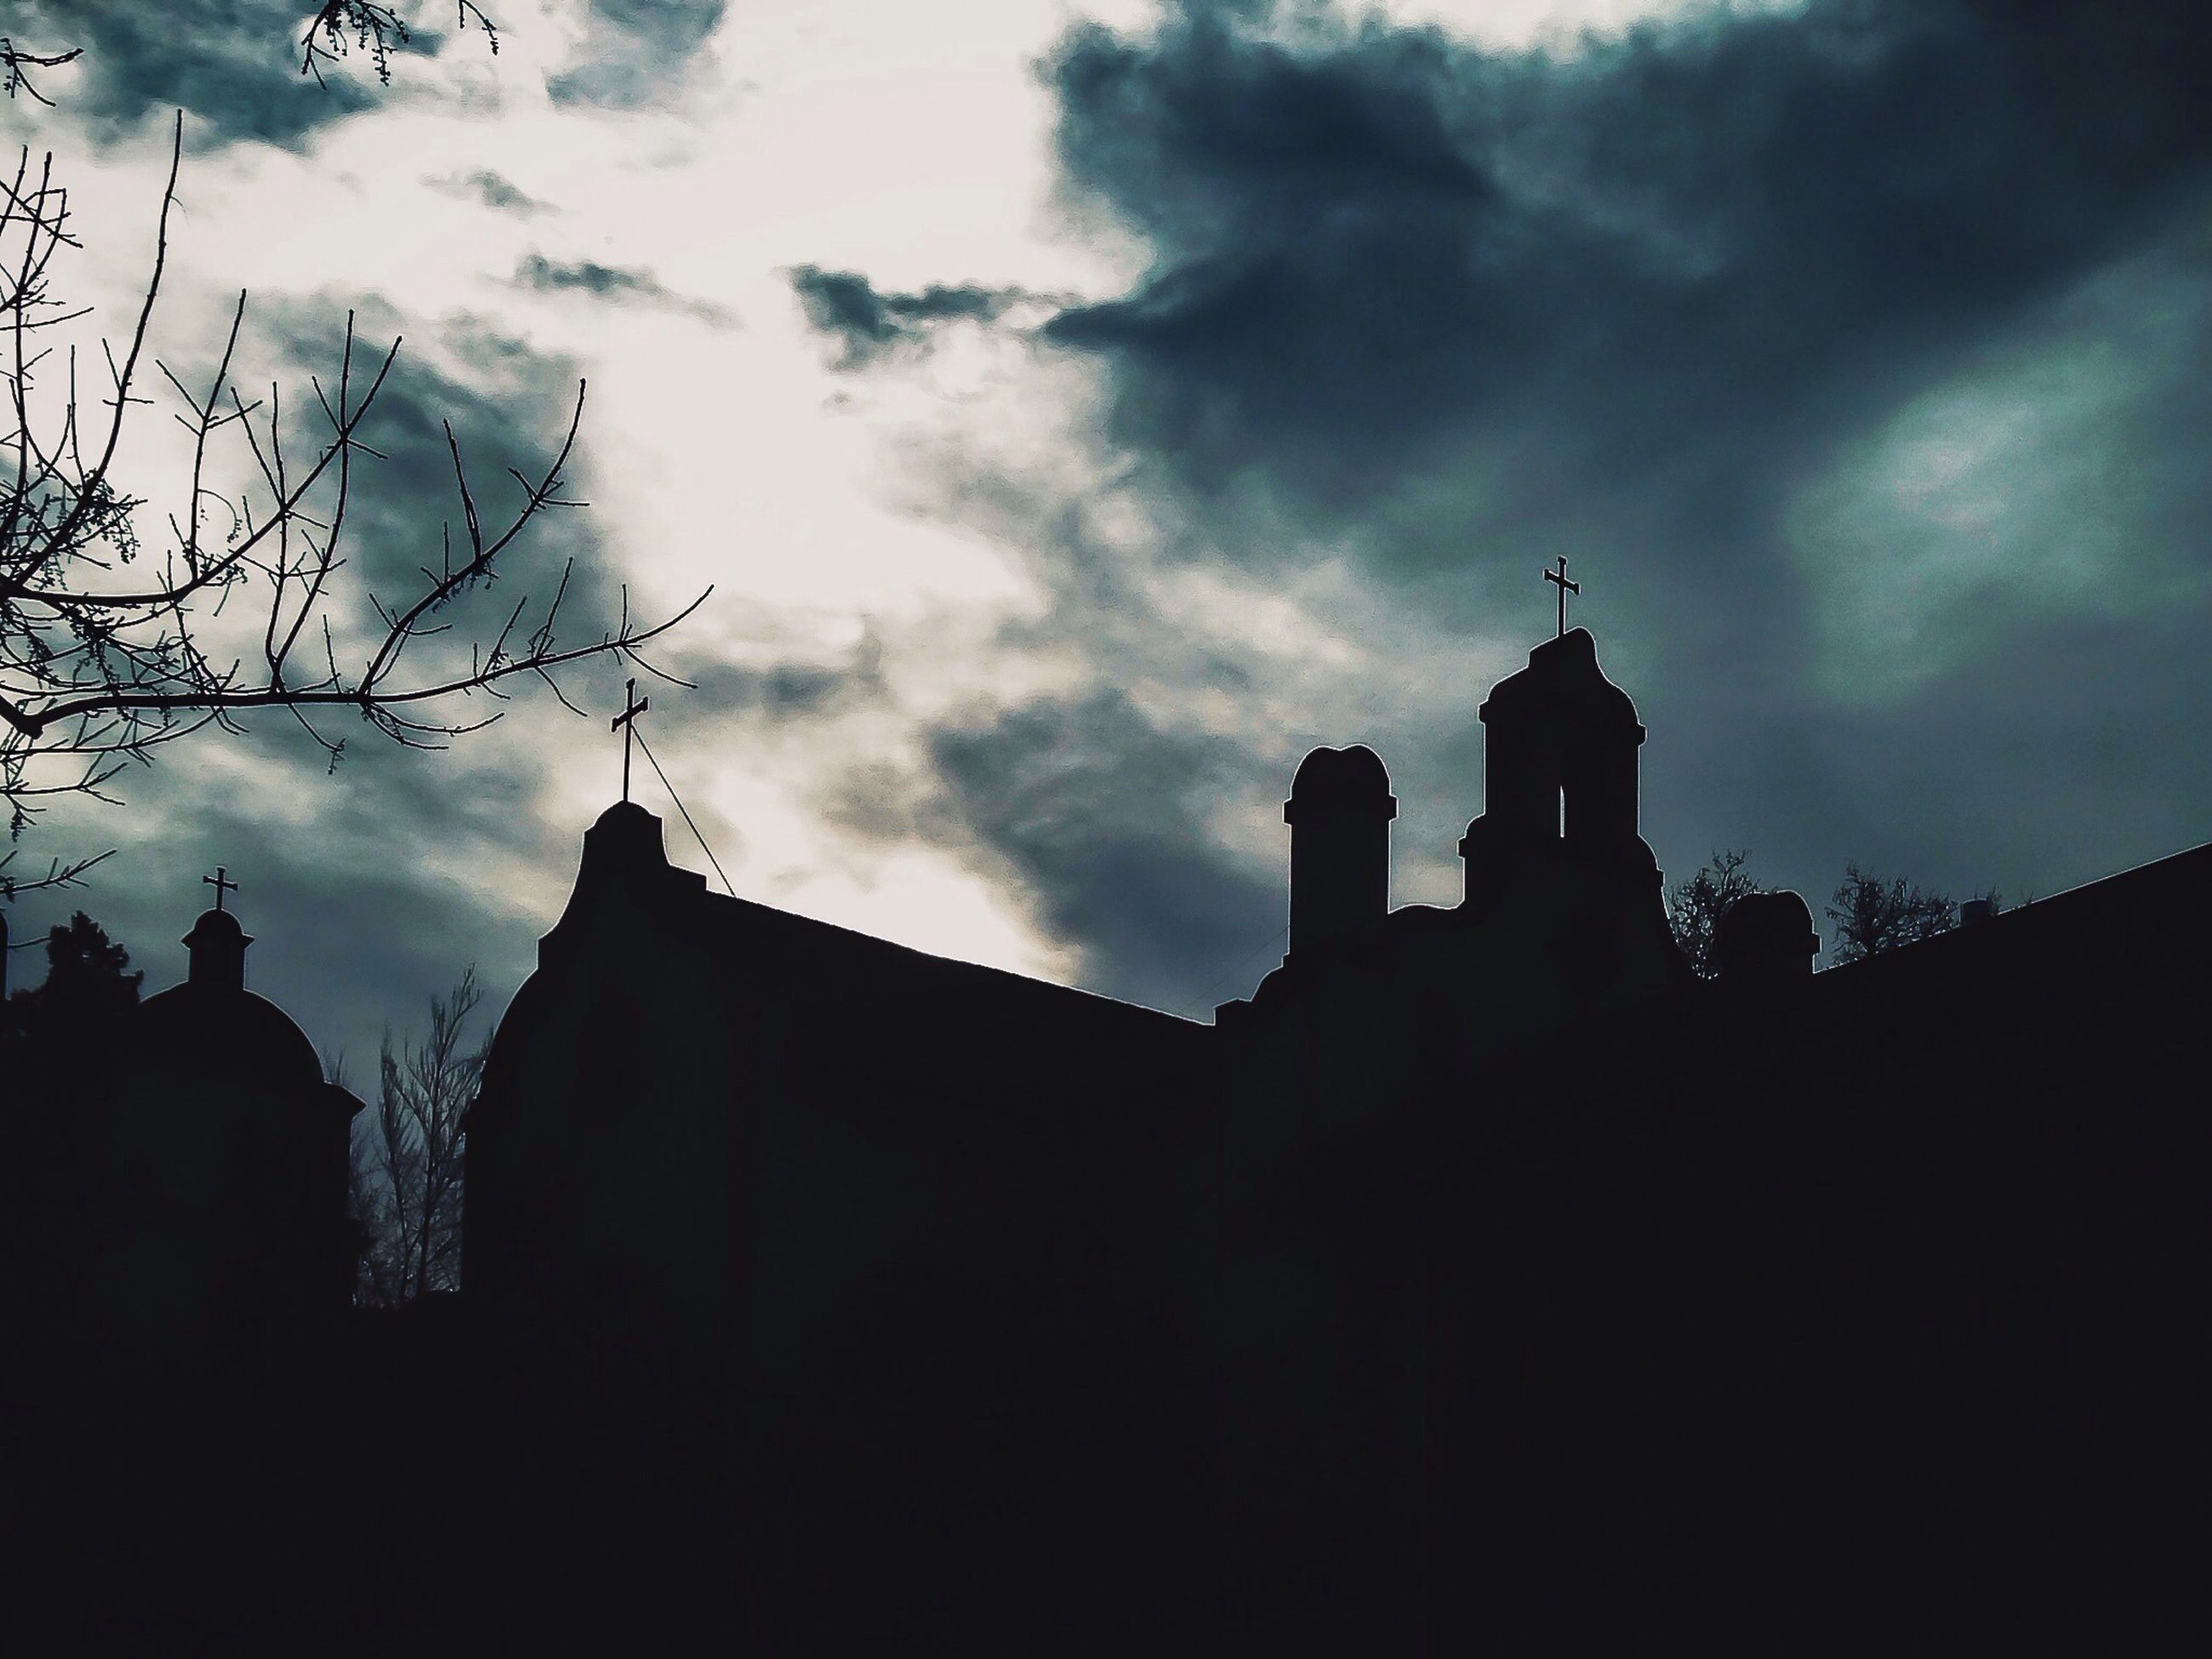 architecture, building exterior, built structure, sky, silhouette, religion, place of worship, church, spirituality, cloud - sky, low angle view, cloudy, cloud, dusk, cathedral, cross, steeple, history